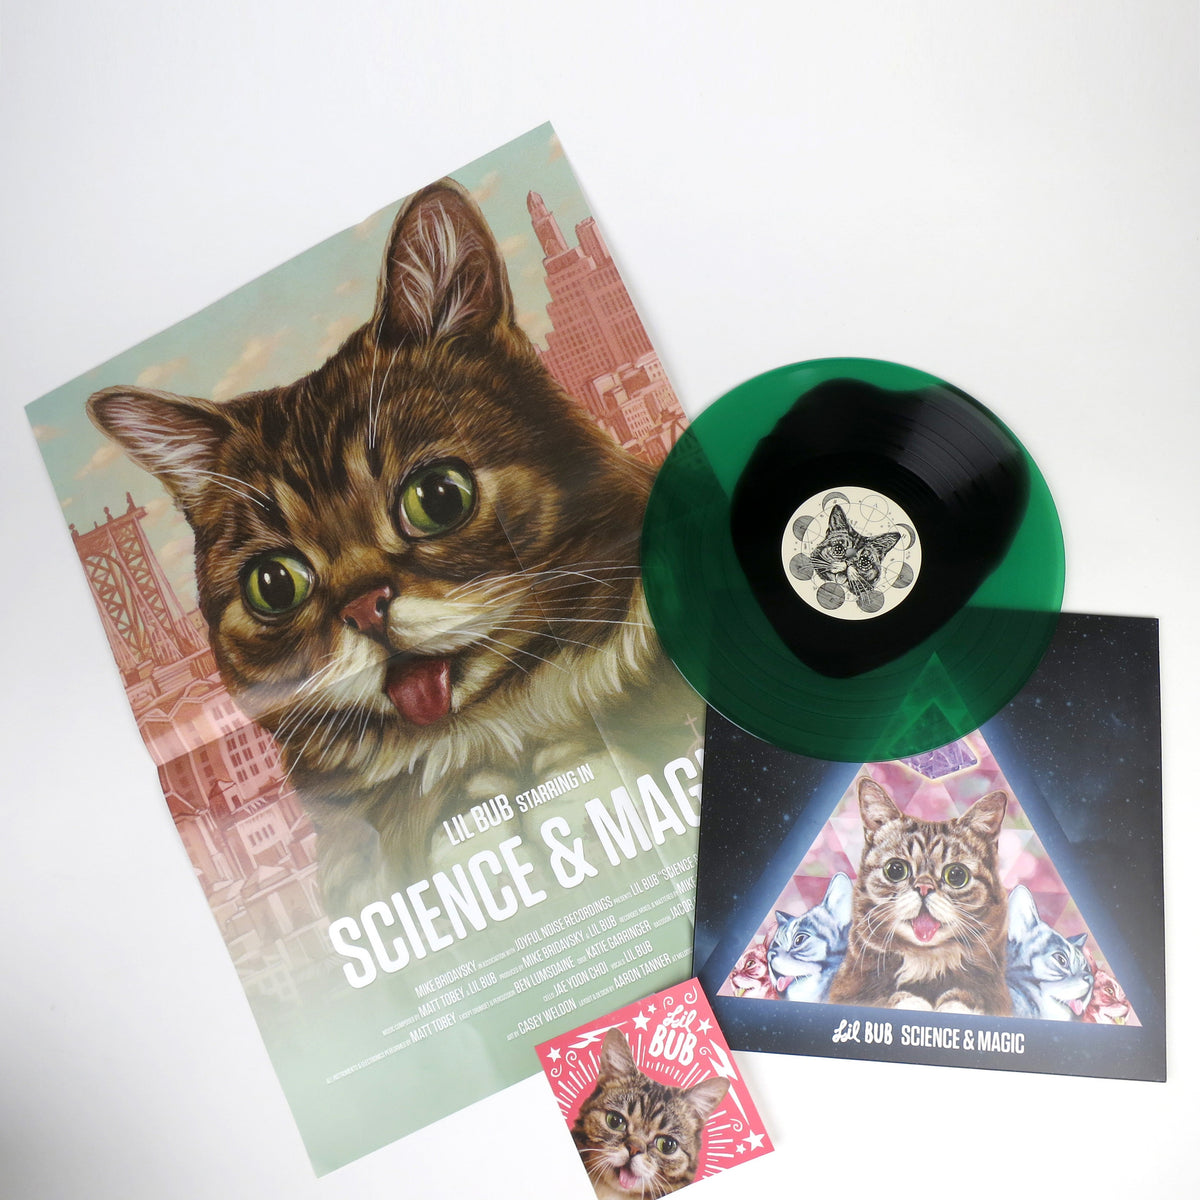 Lil Bub: Science & Magic Colored Vinyl